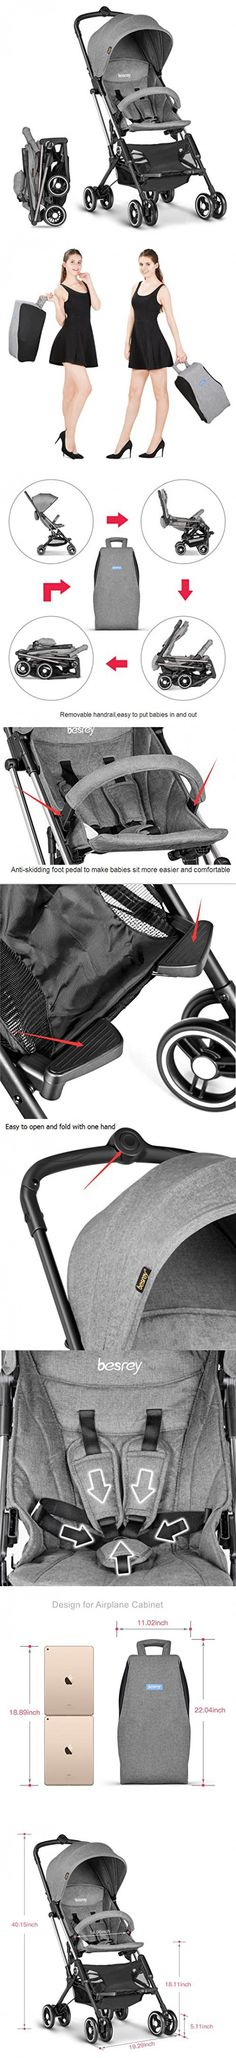 20 Super Compact Strollers Ideas Compact Strollers Stroller Baby Strollers